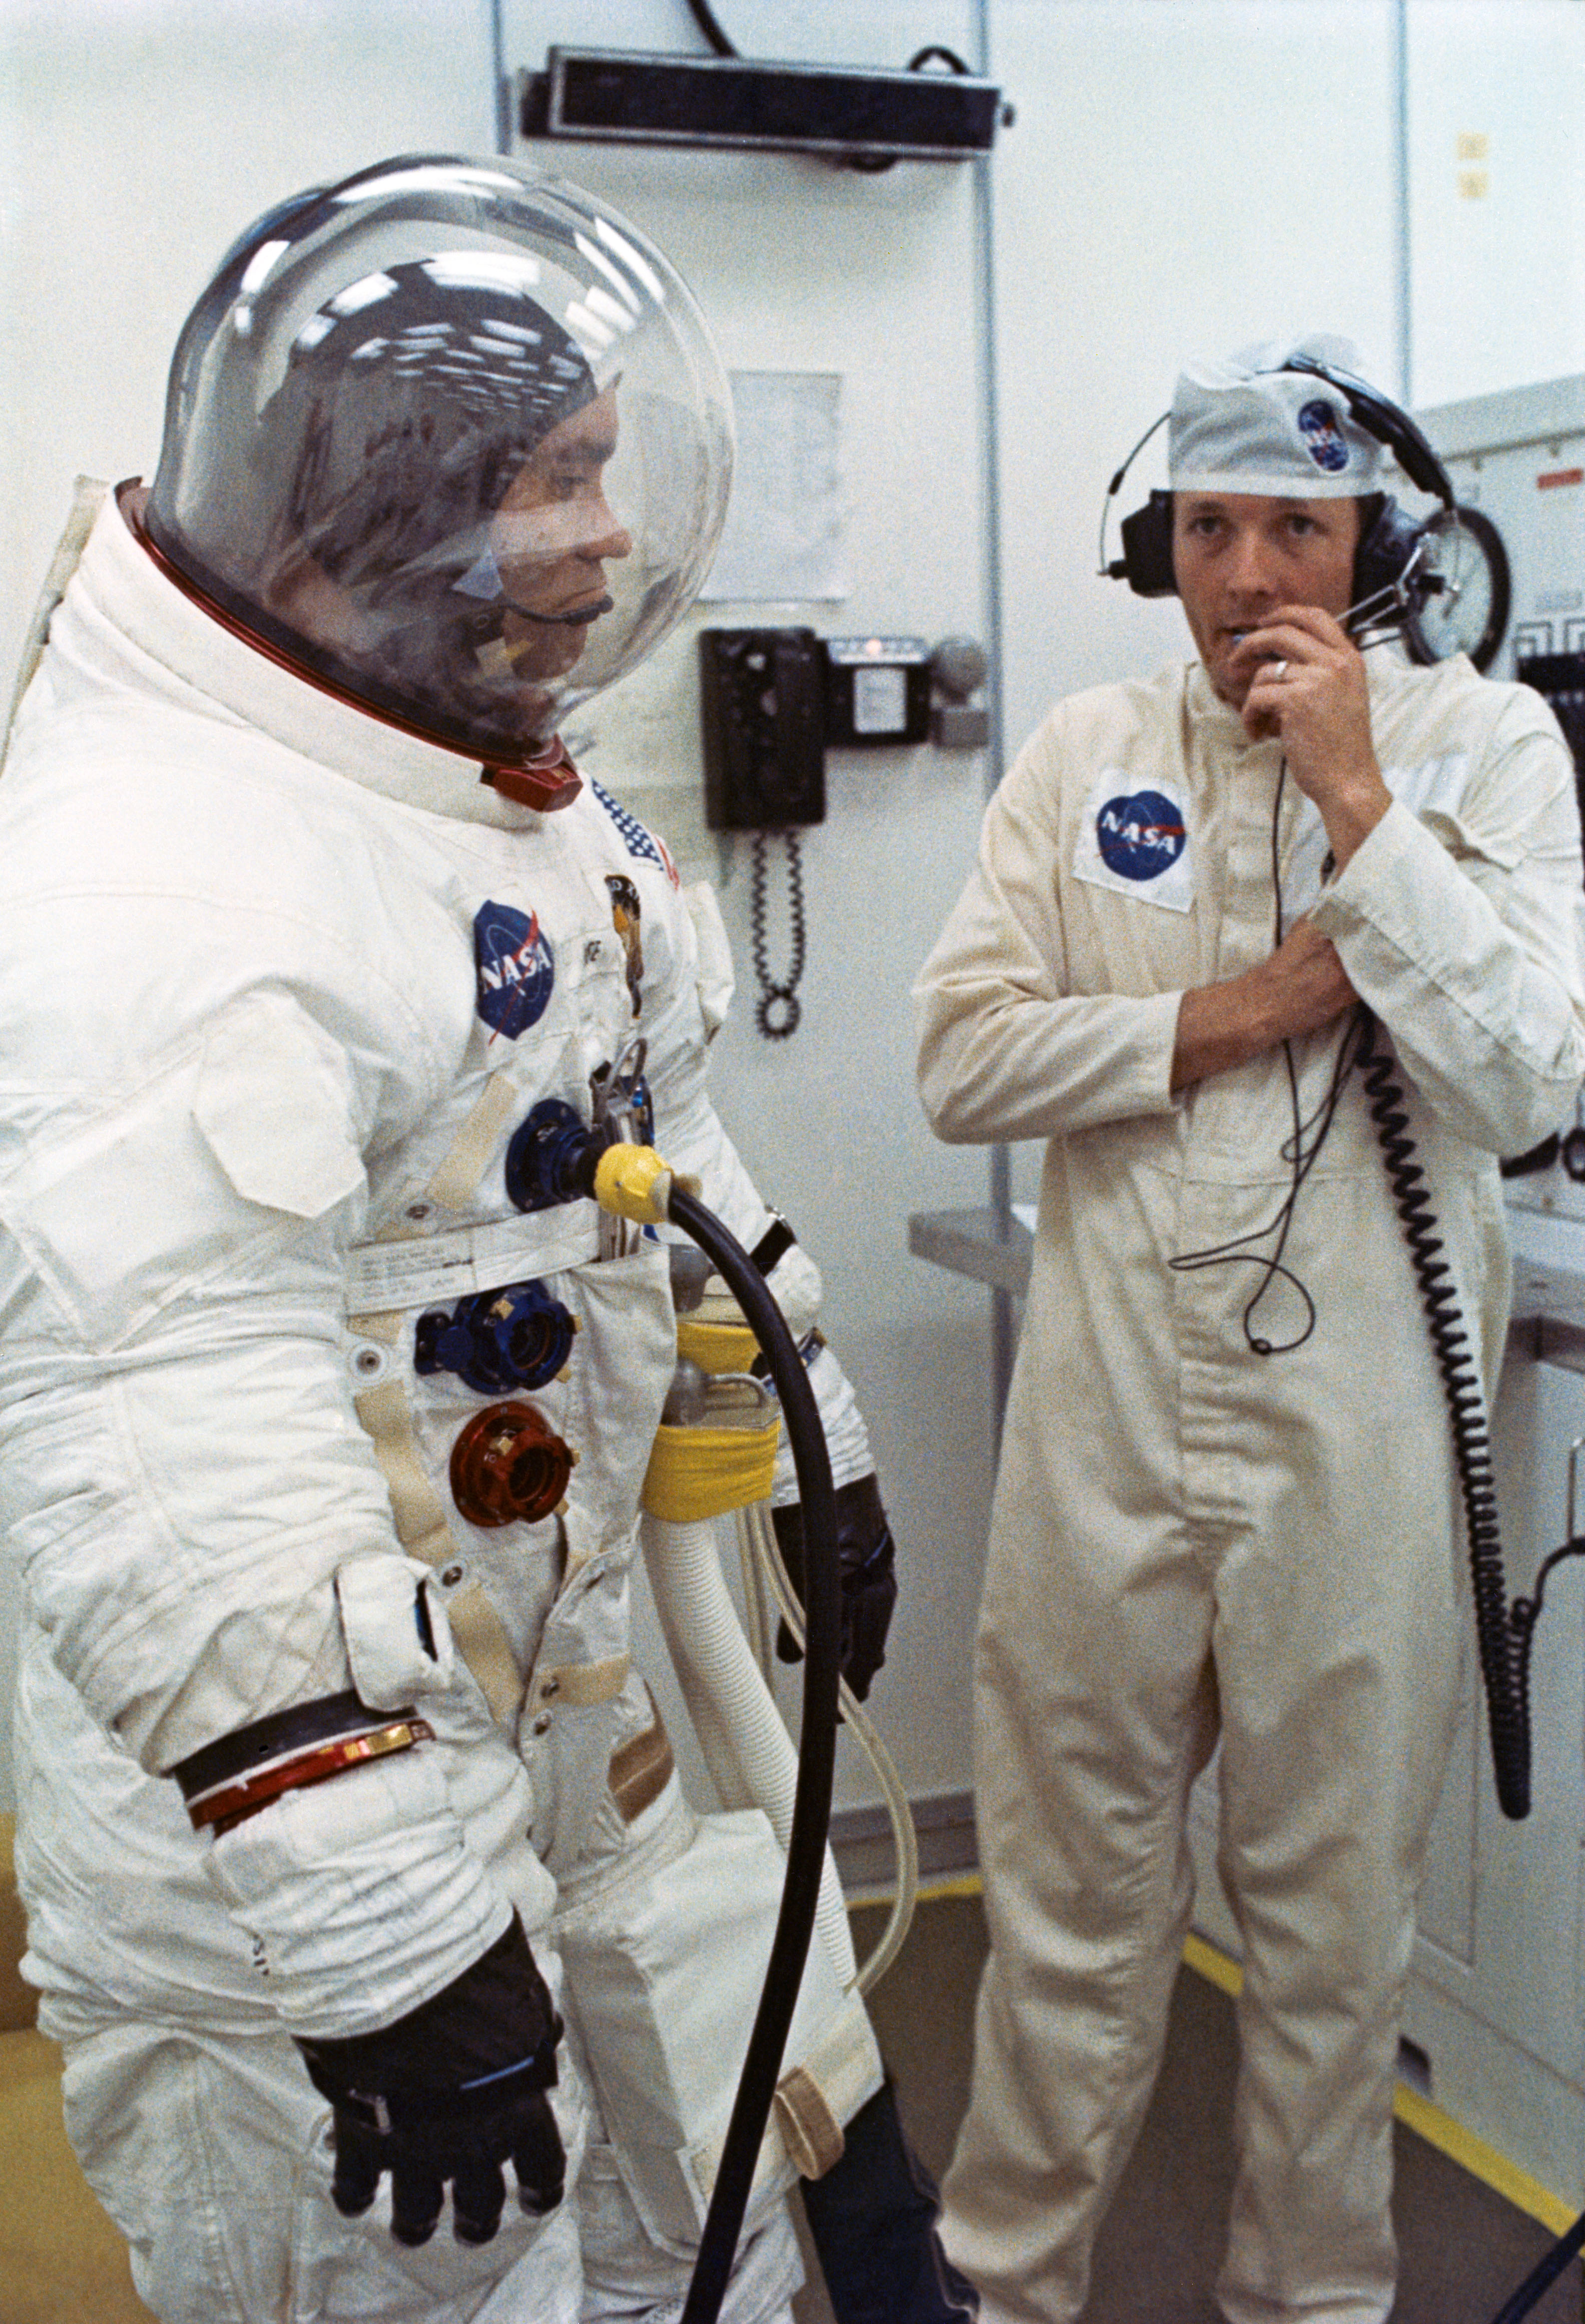 space apollo mission astronauts - photo #35